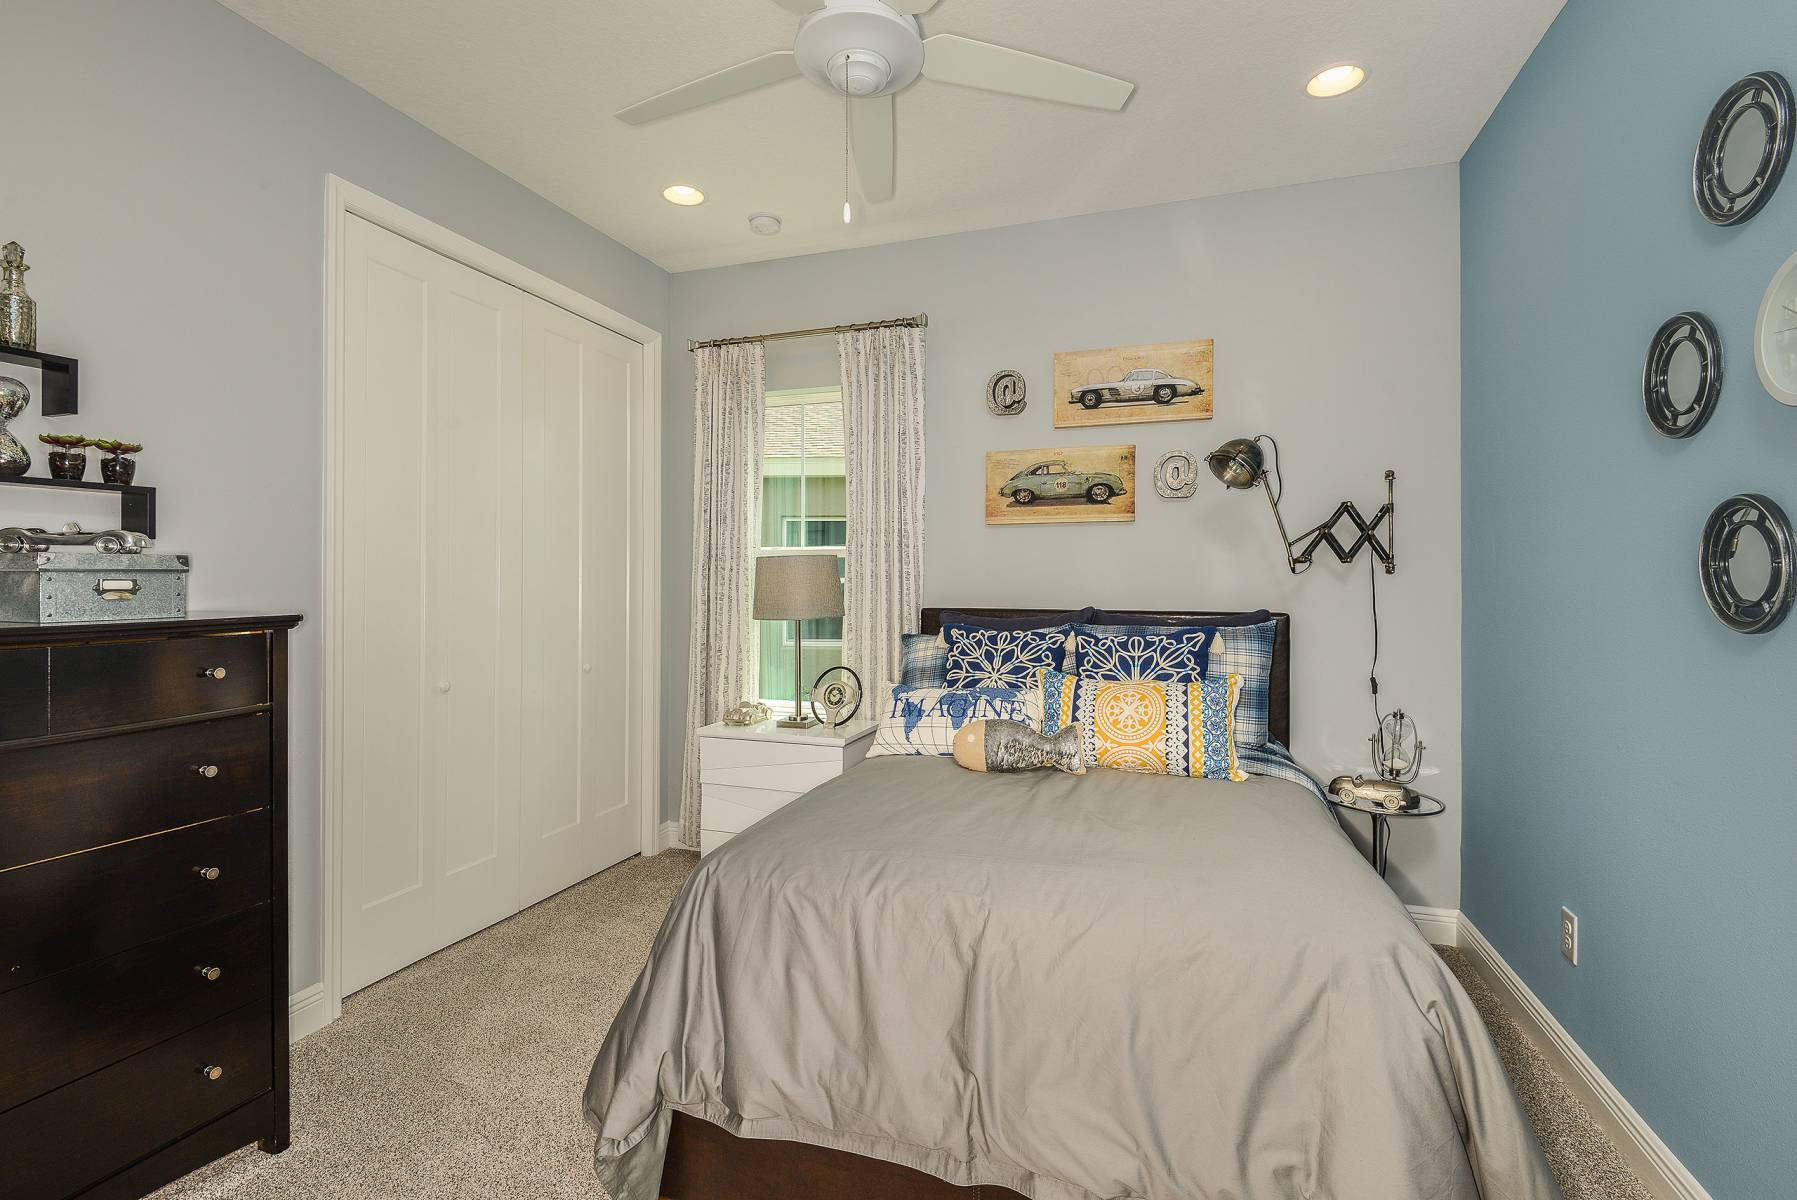 Bedroom featured in the Bayshore I By Homes by WestBay in Tampa-St. Petersburg, FL